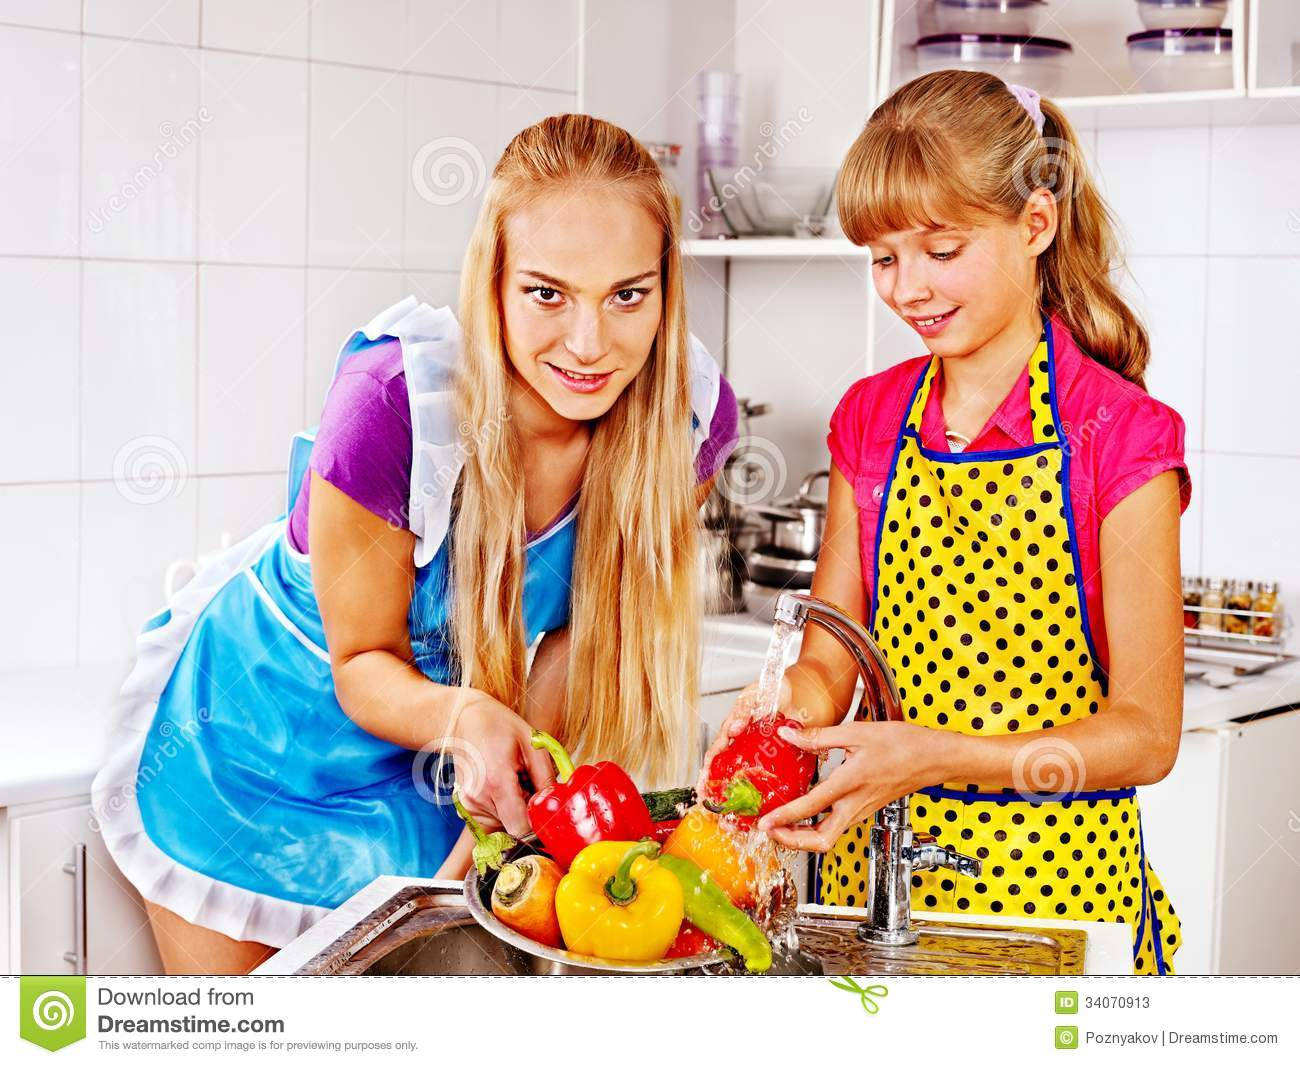 Children Washing Fruit At Kitchen. Royalty Free Stock Image.